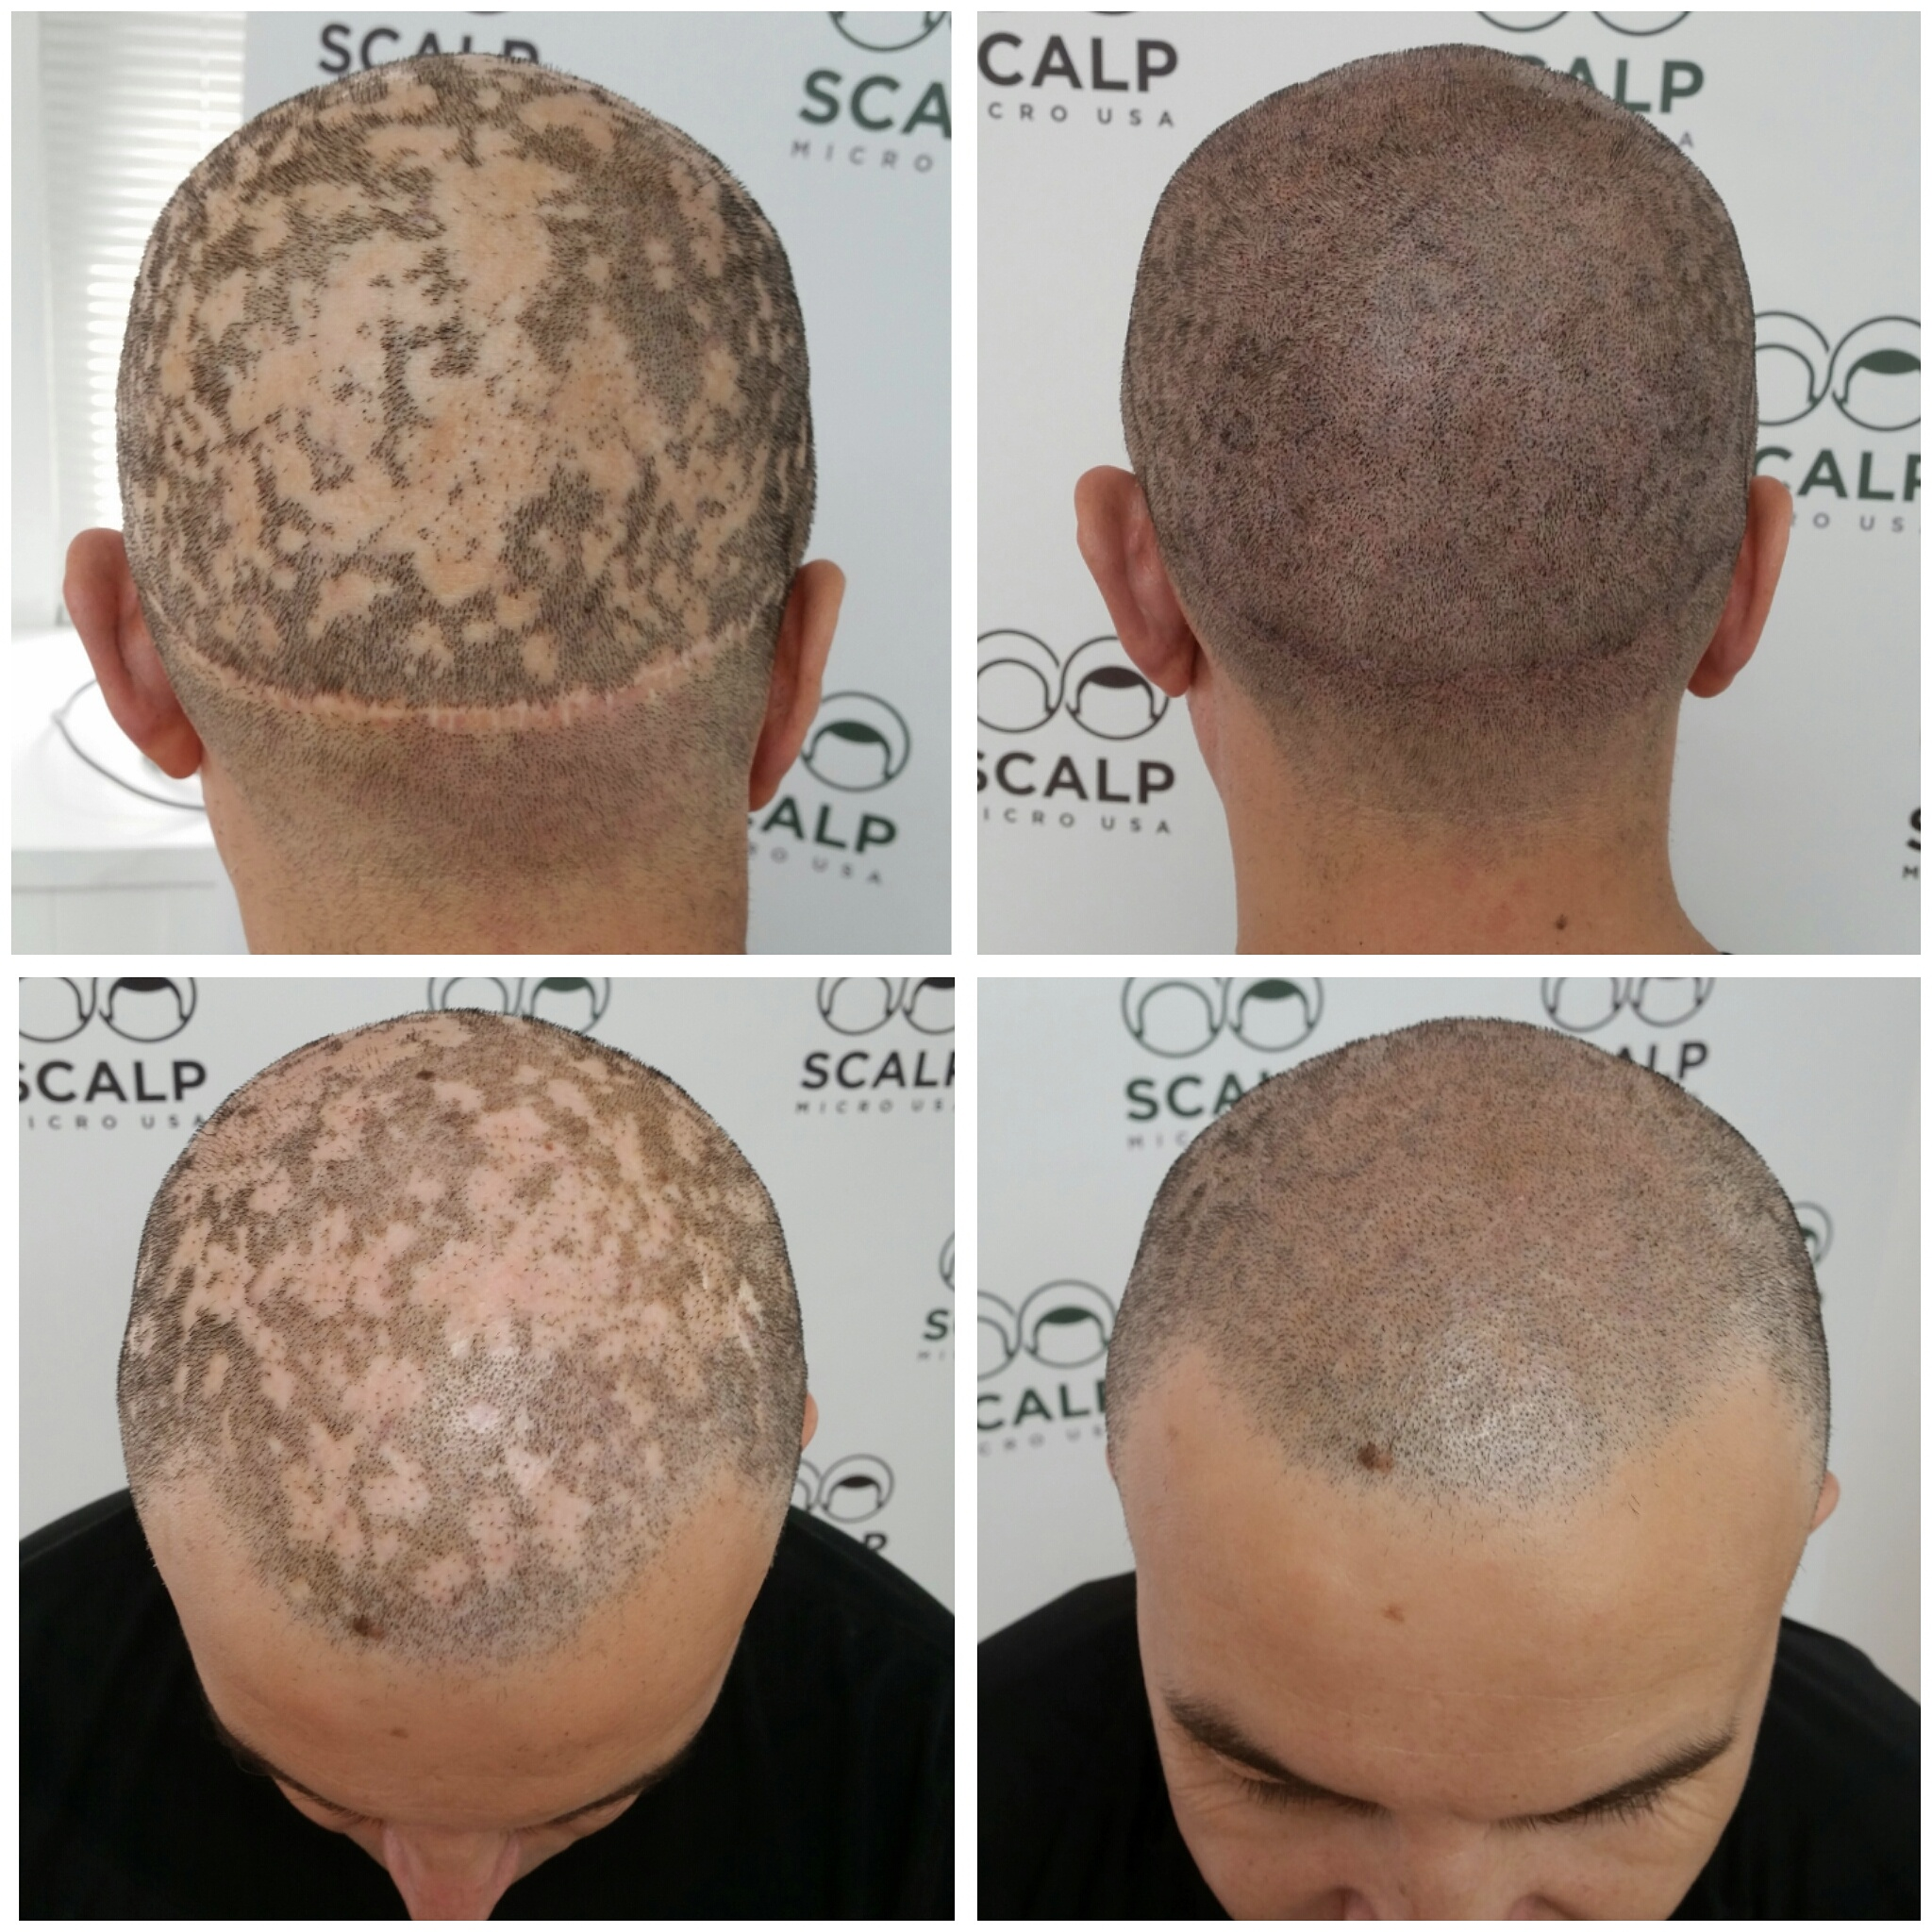 Cosmetic treatments to get hair on scalp photo